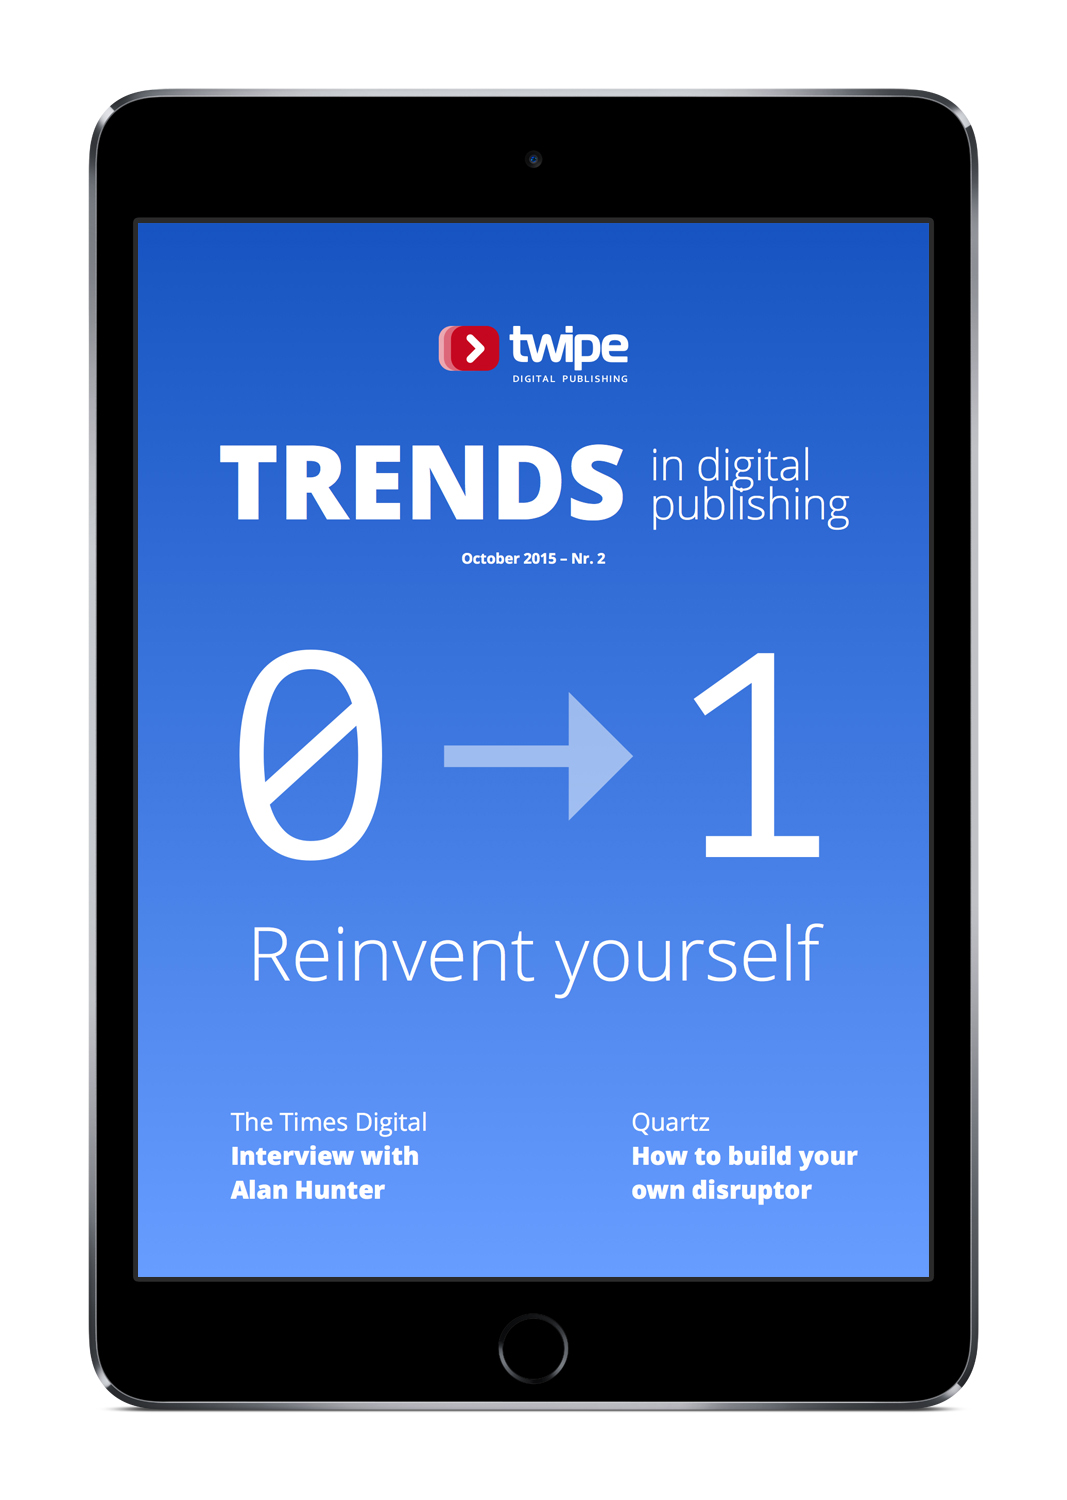 Trends in Digital Publishing - Second edition - reinvent yourself